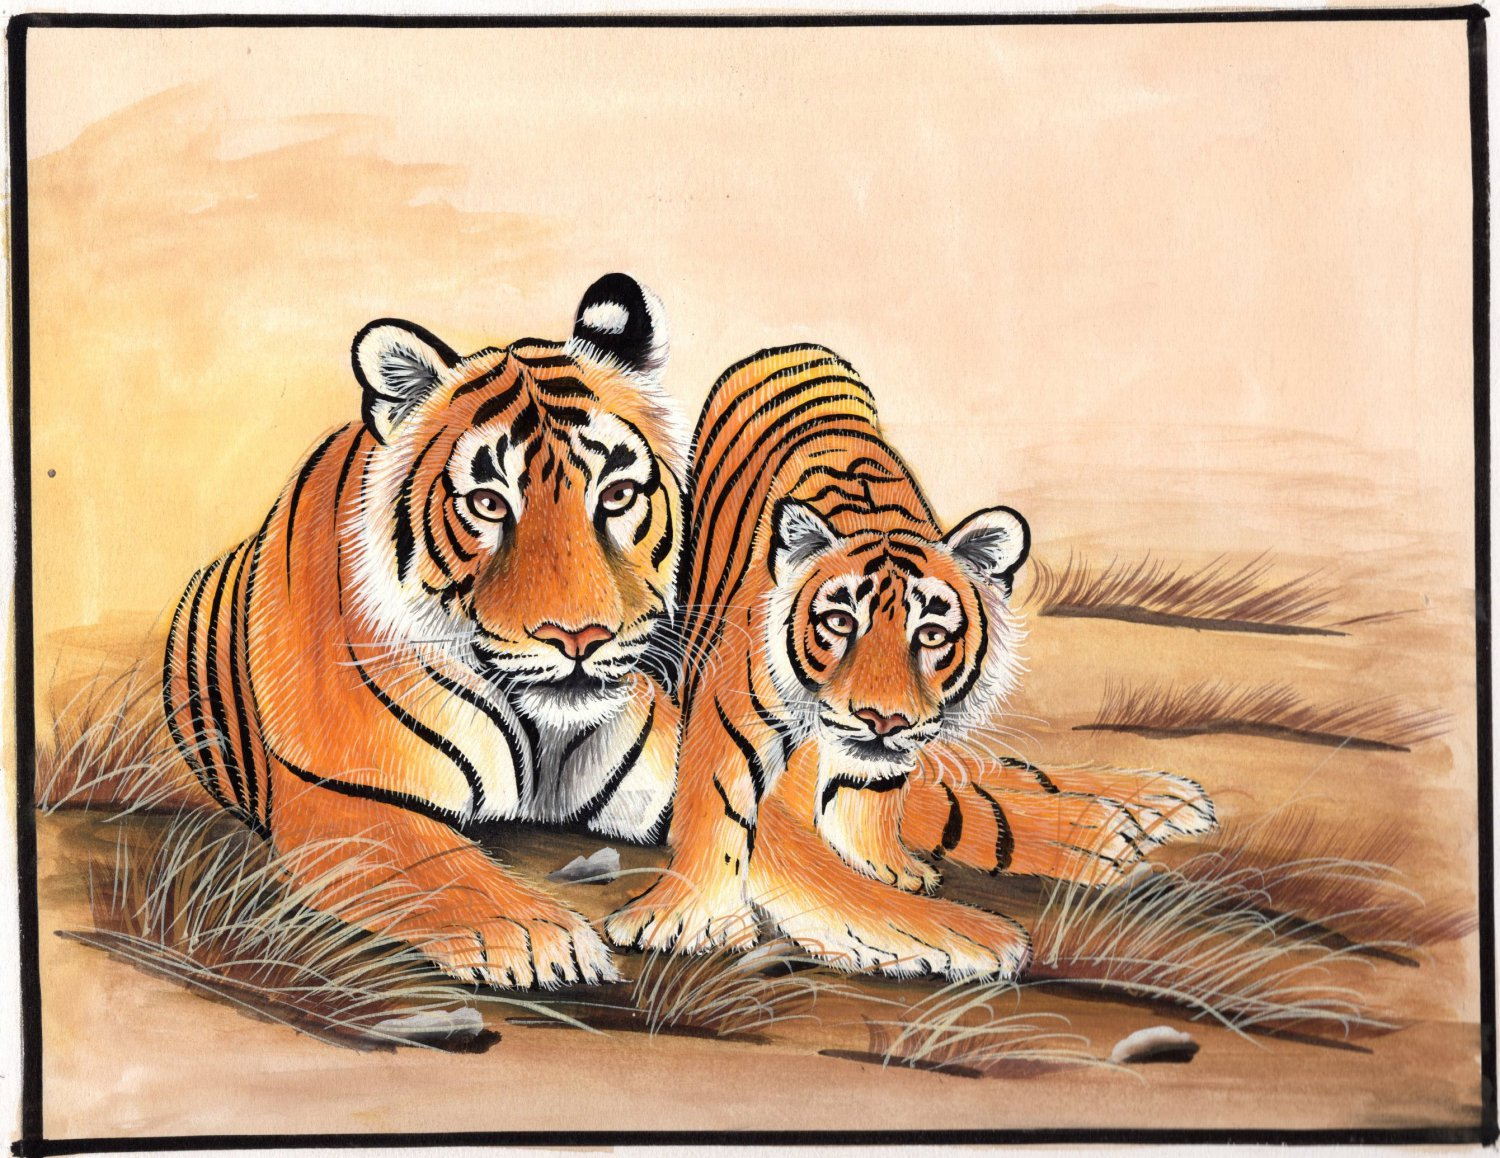 Tiger Handmade Painting Indian Miniature Ethnic Wildlife Animal Watercolor Art